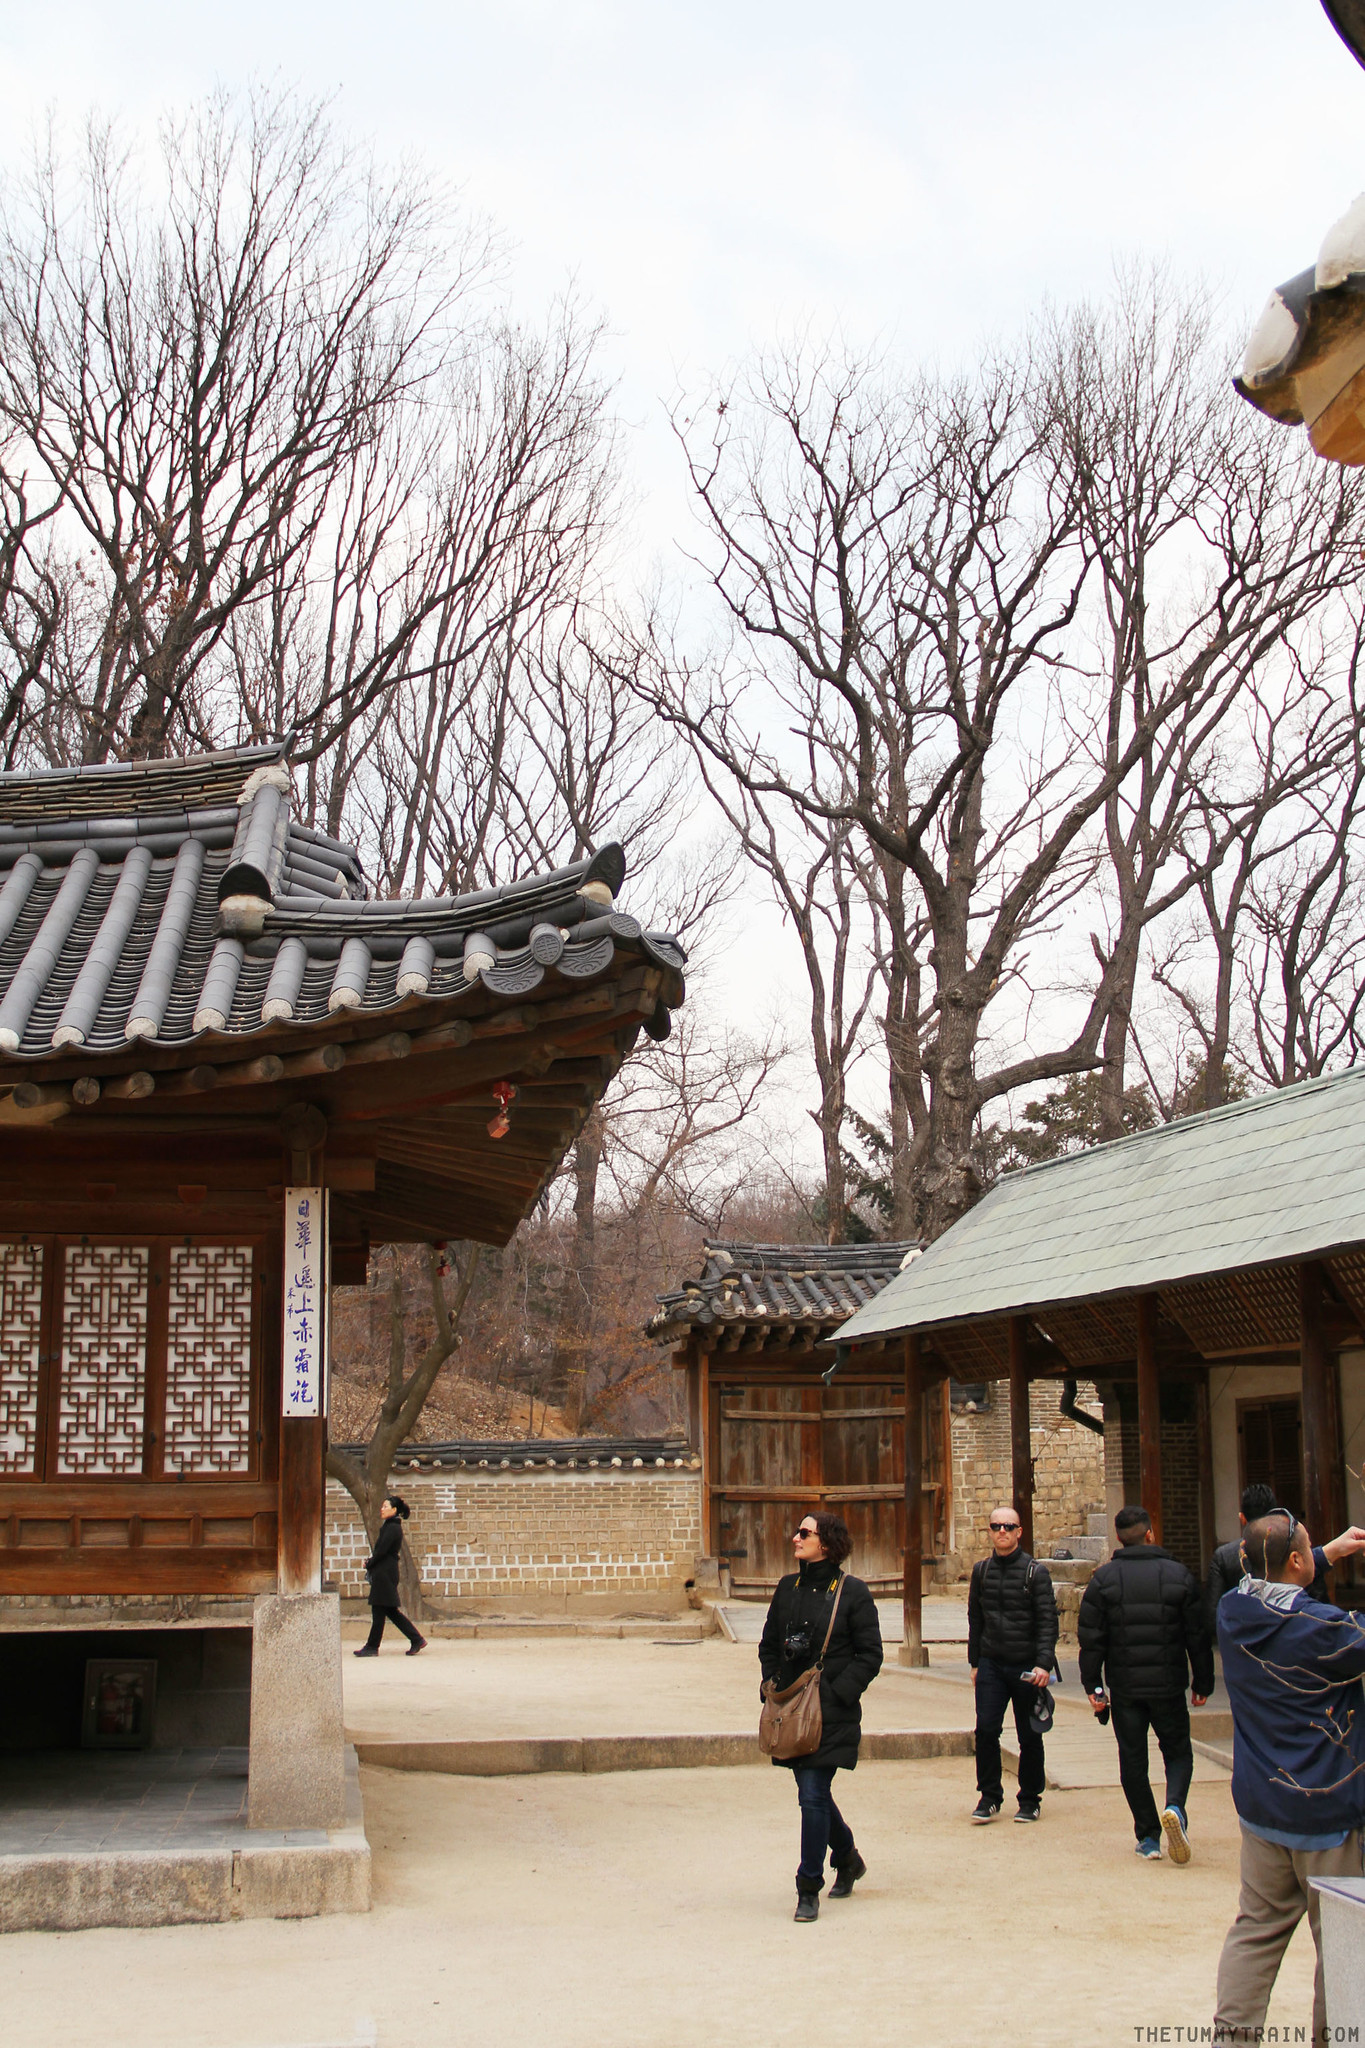 32686932104 60339e1fbb k - Seoul-ful Spring 2016: Greeting the first blooms at Changdeokgung Palace